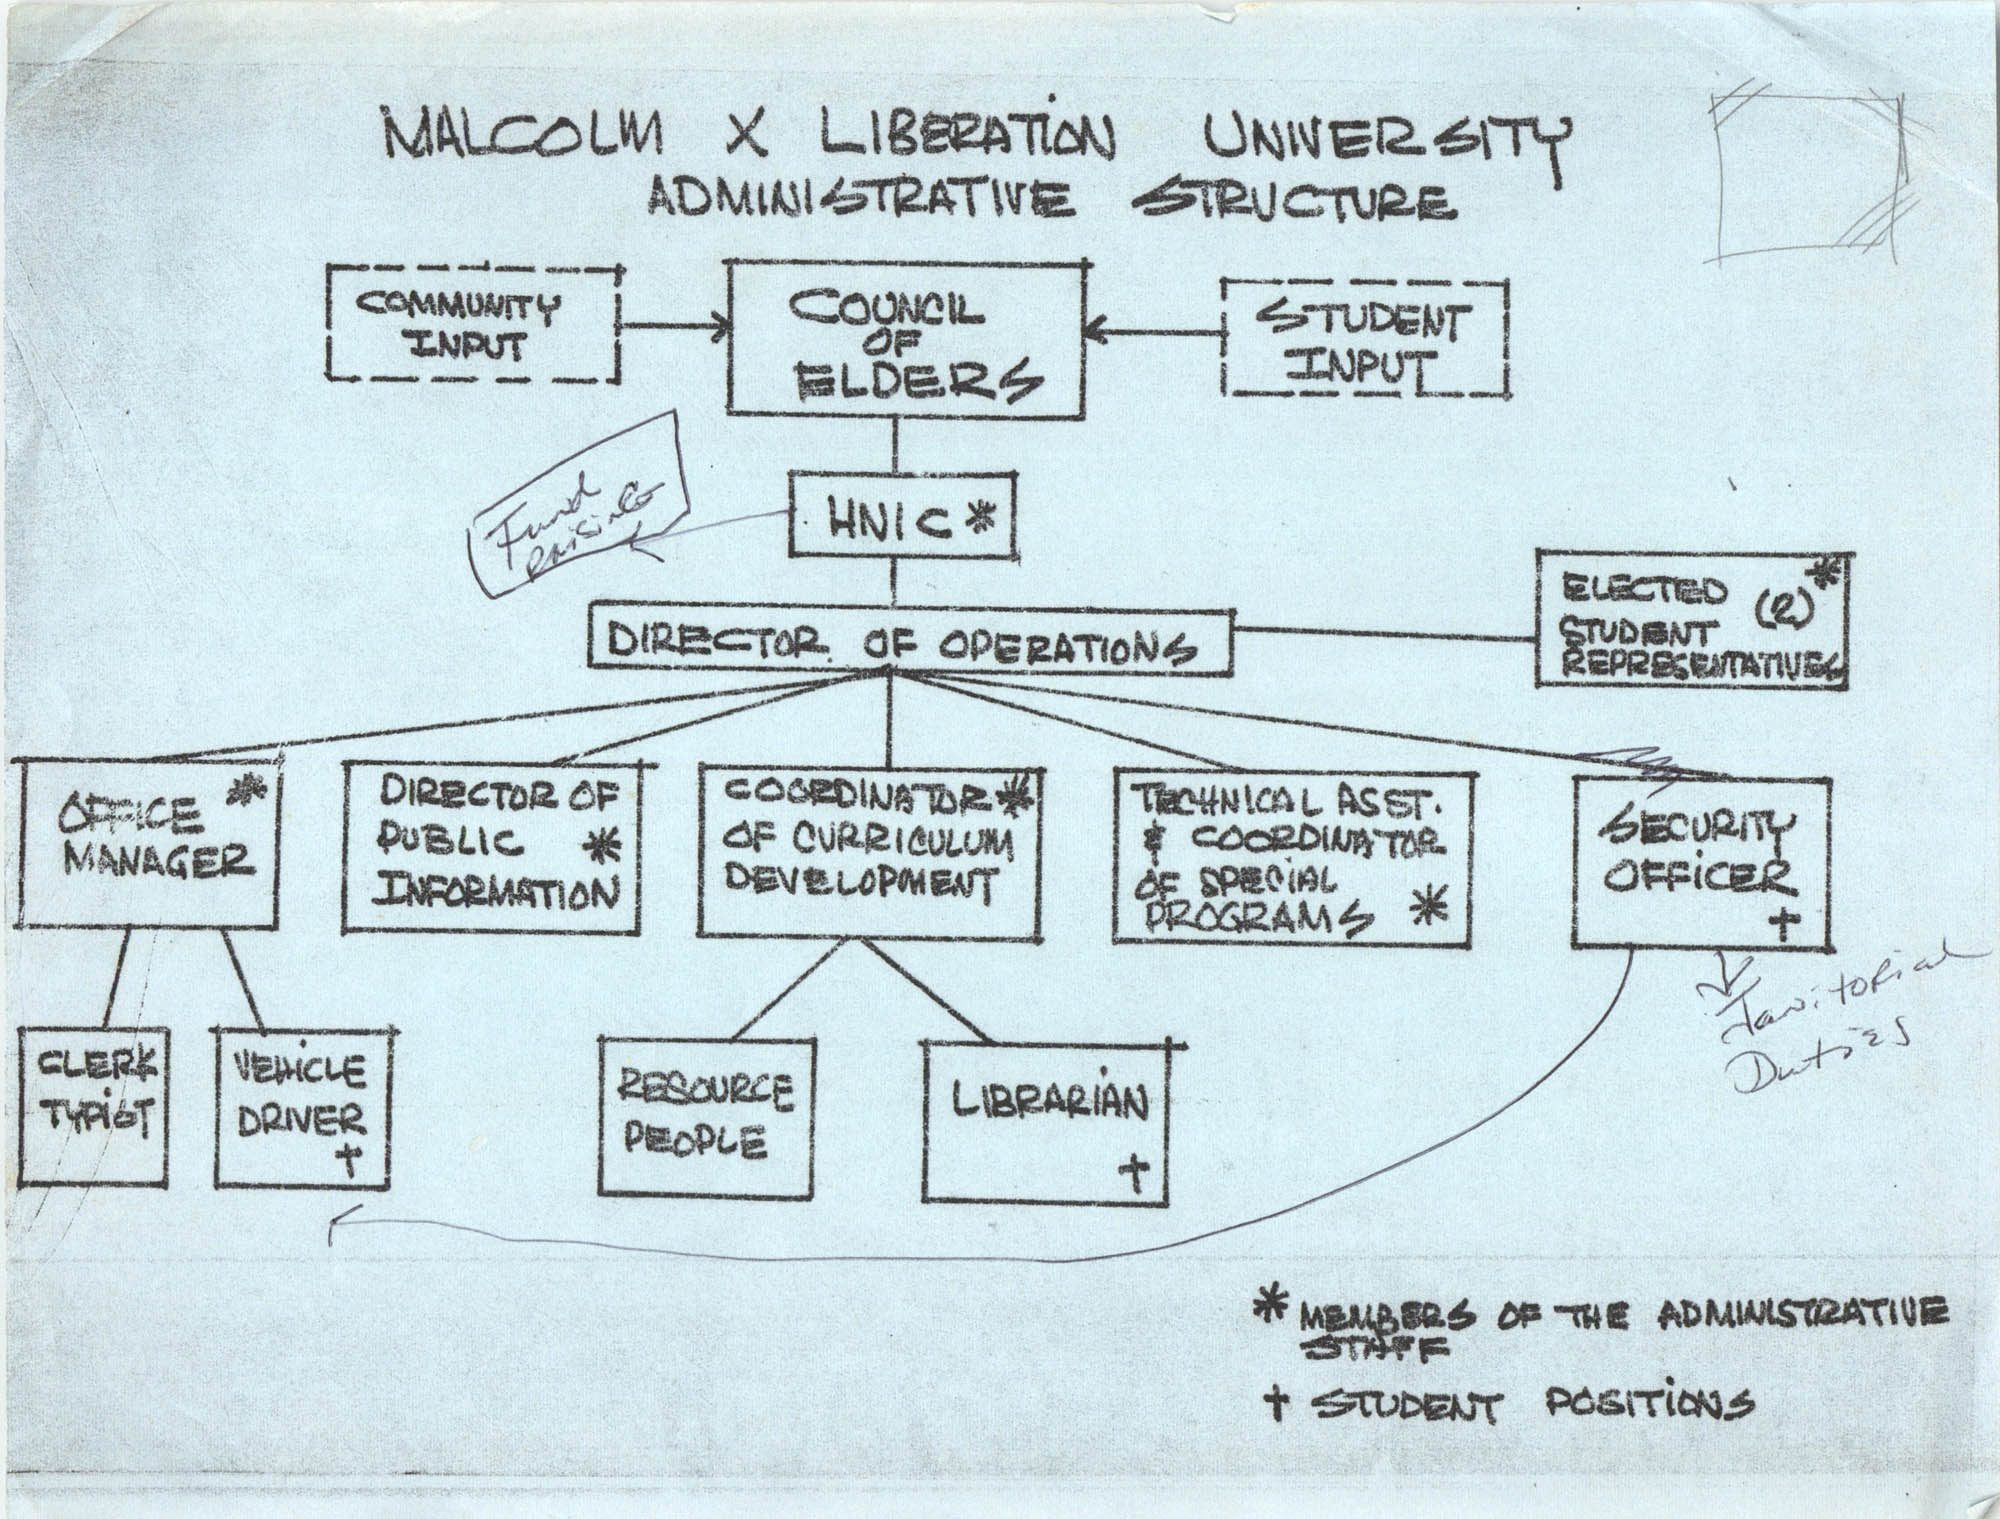 Malcolm X Liberation University Administrative Structure